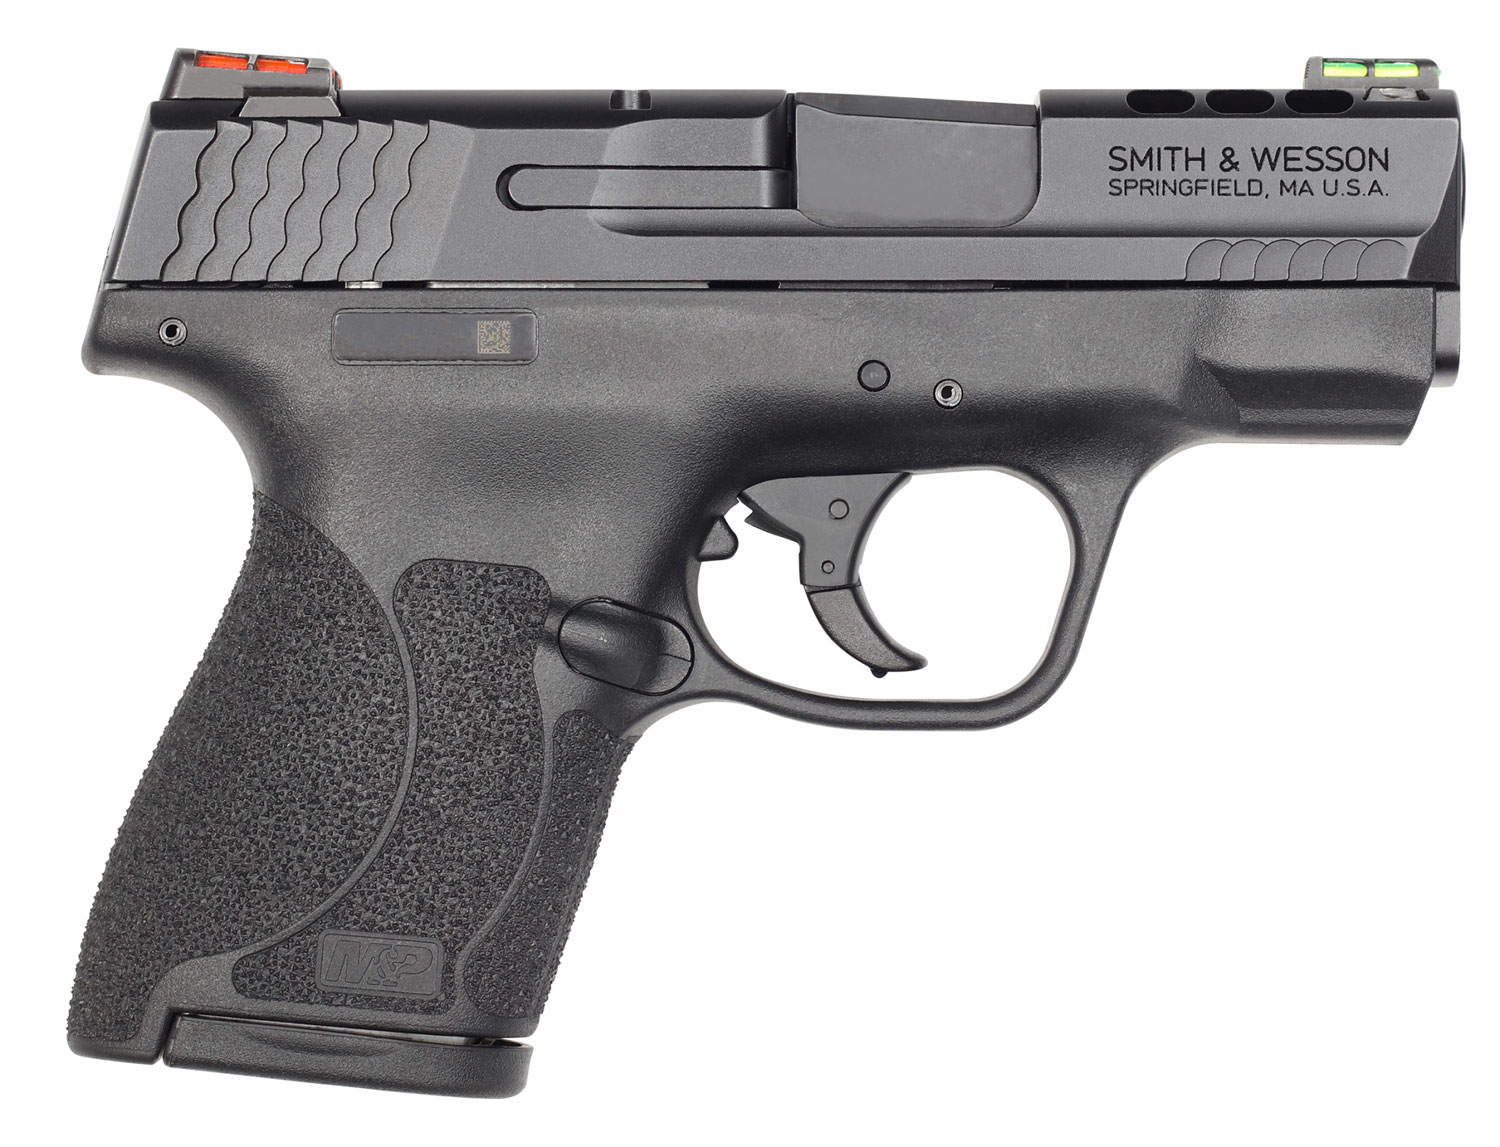 Smith & Wesson 11868 M&P Performance Center M2.0 40 S&W Double 3.1